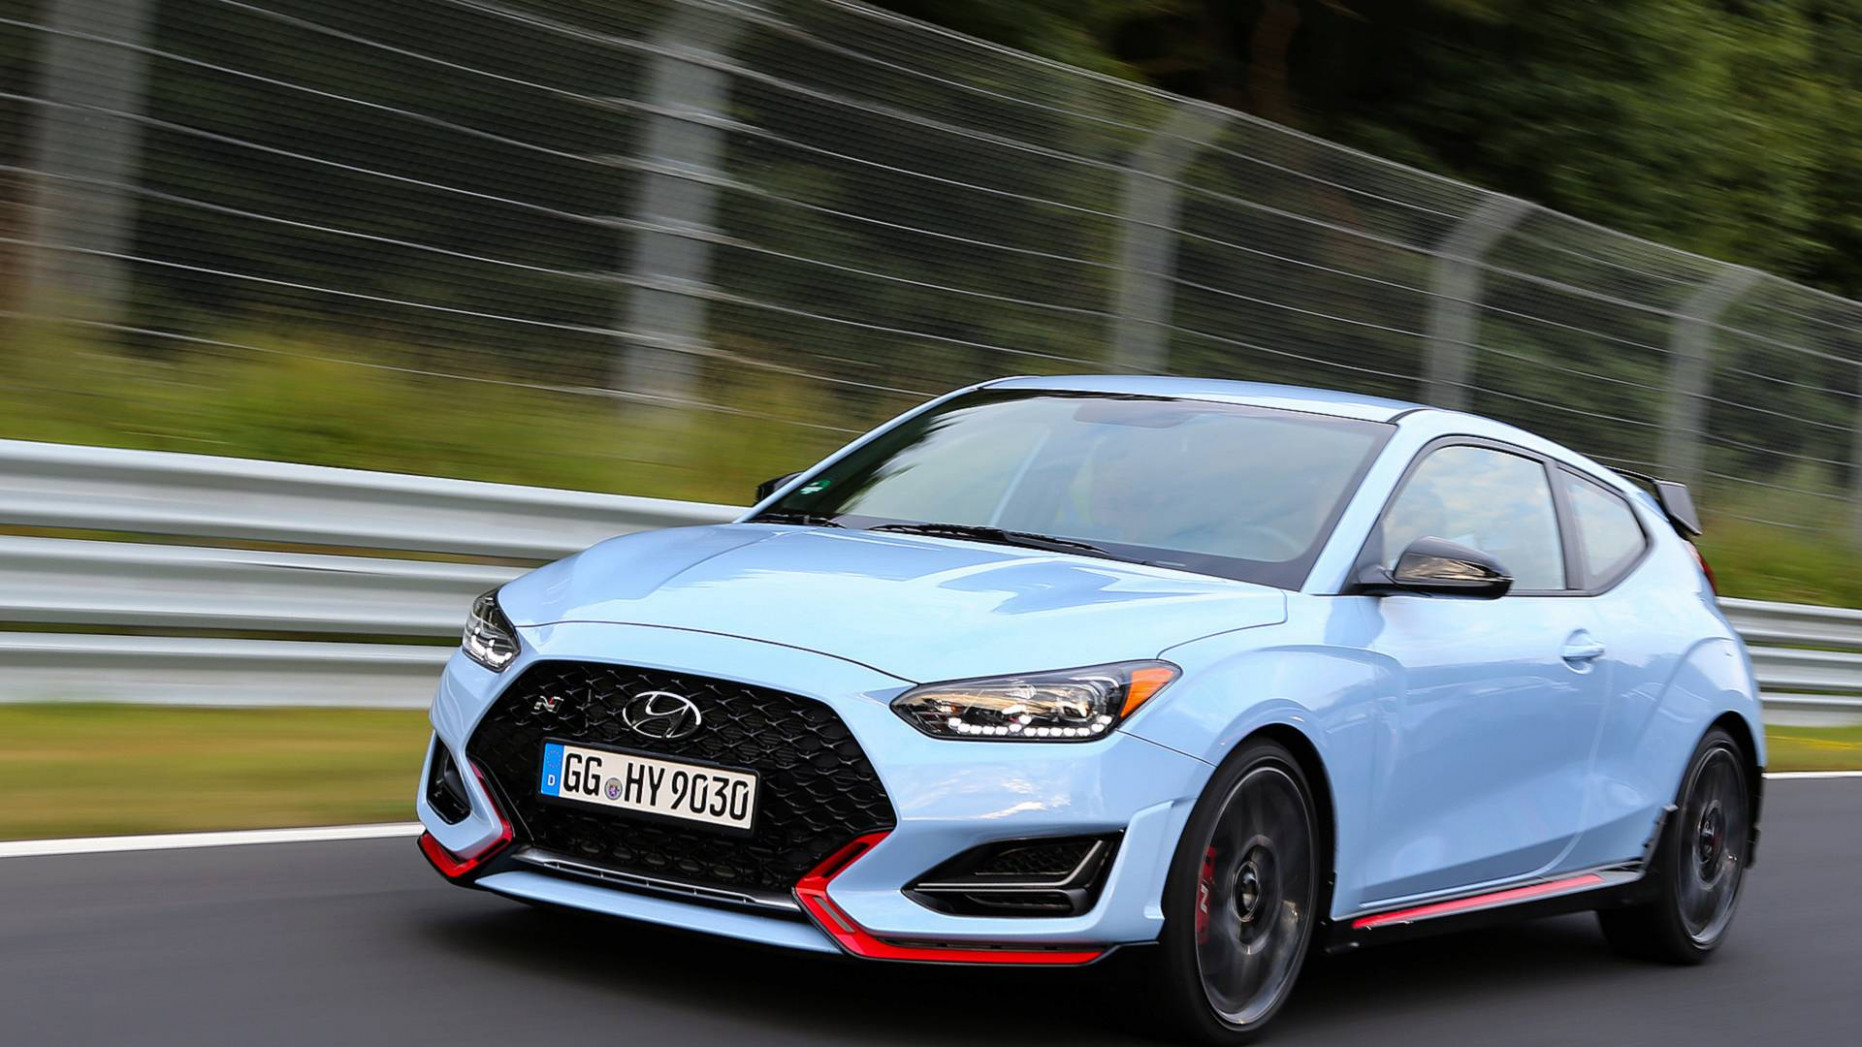 6 Hyundai Veloster N Sees Modest Price Bump